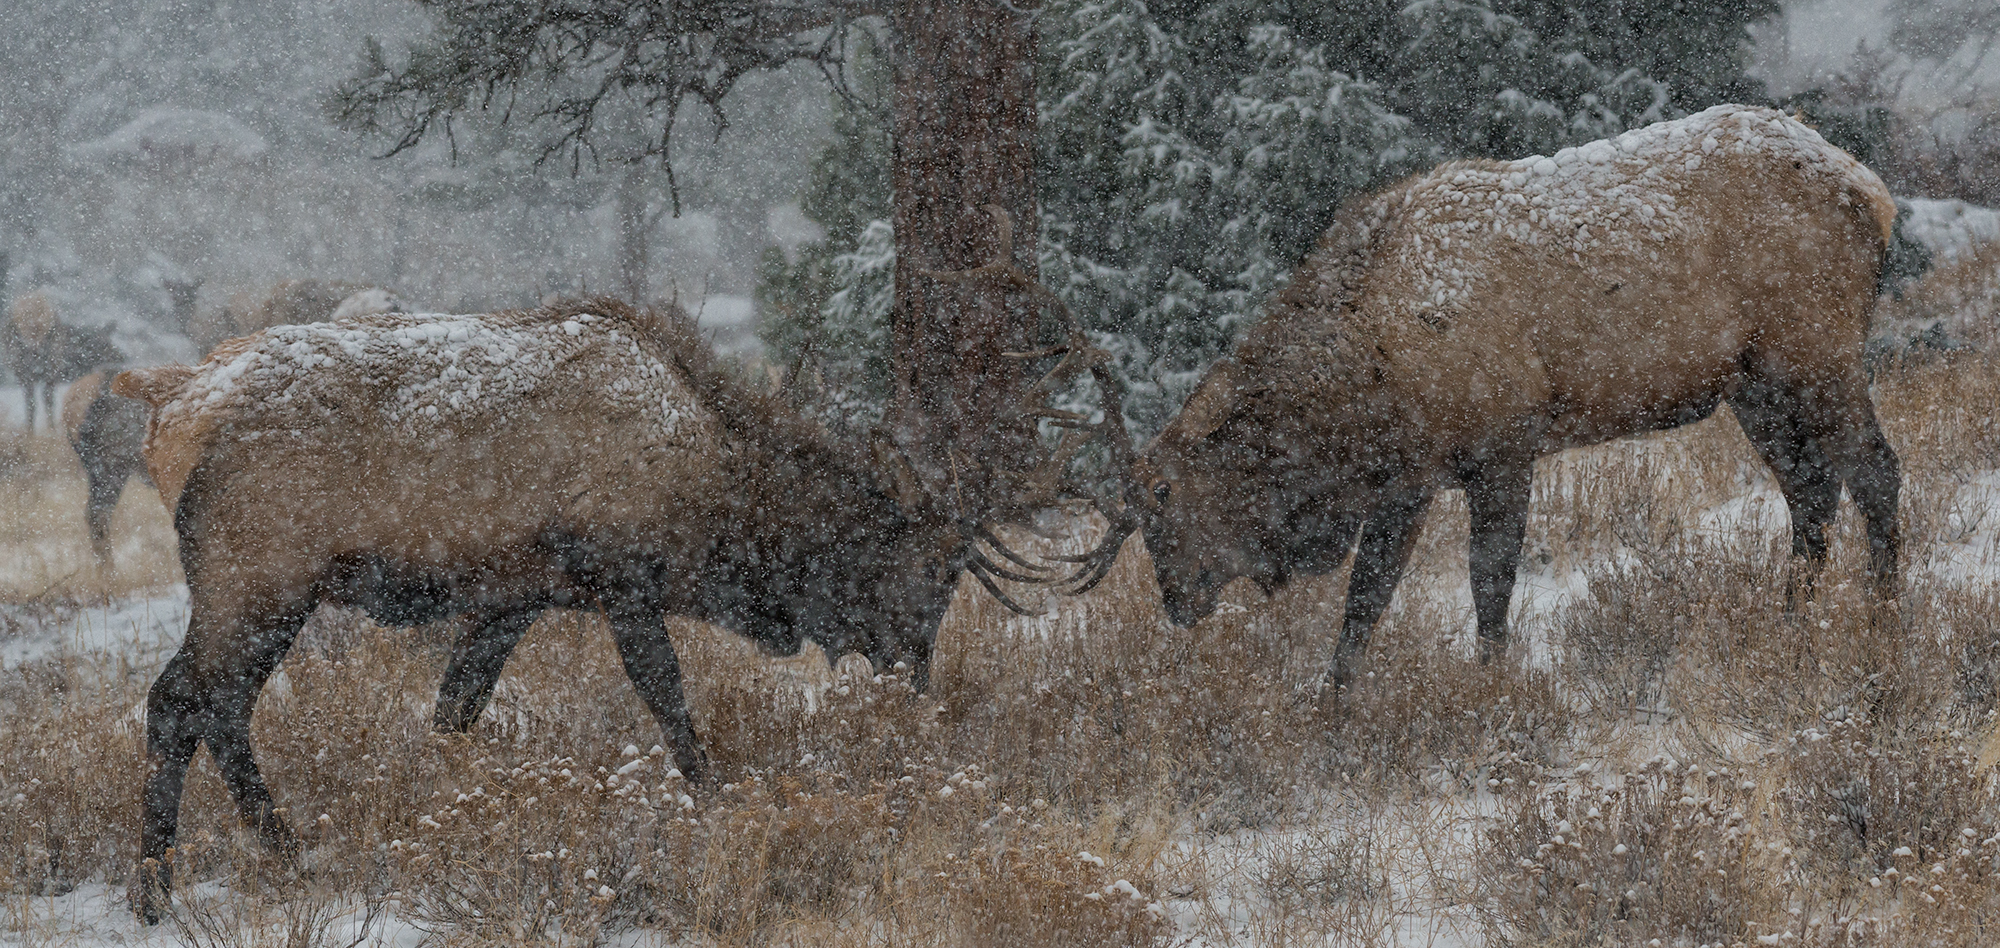 Blizzard Battle. Estes Park, Colorado, 2016